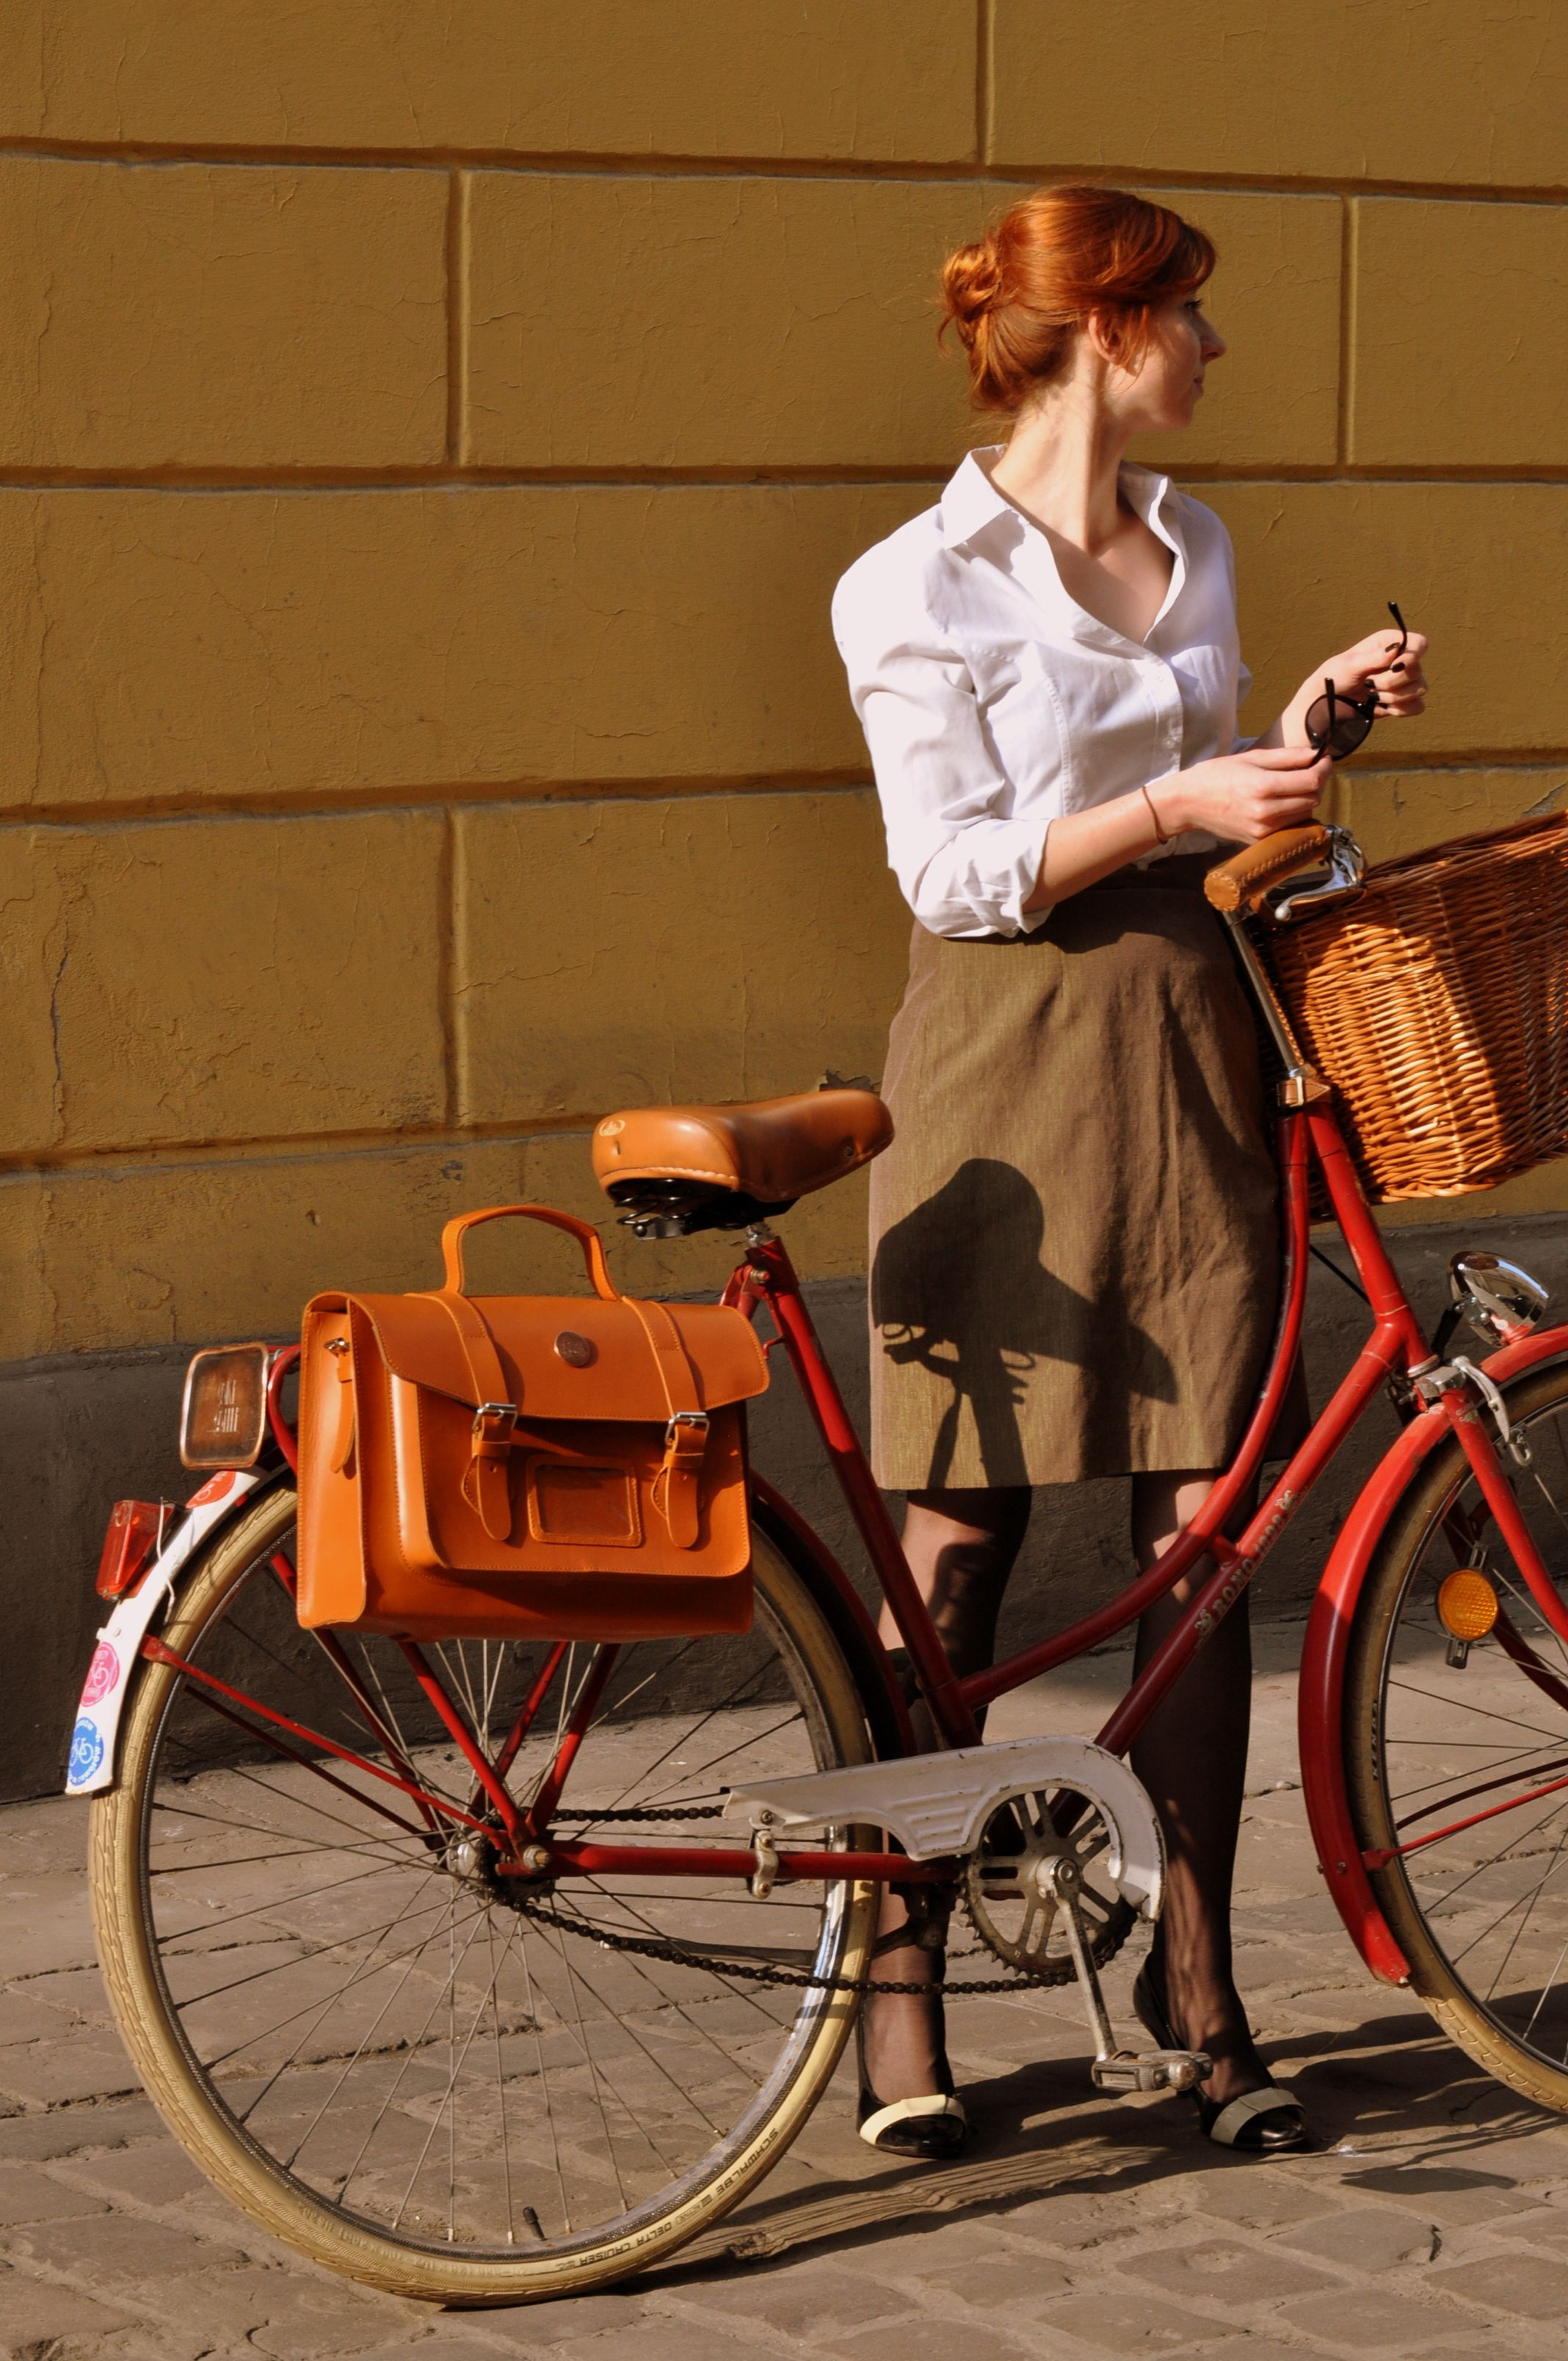 Classic chic - classic bike accessories, Bike Belle the bicycle ...